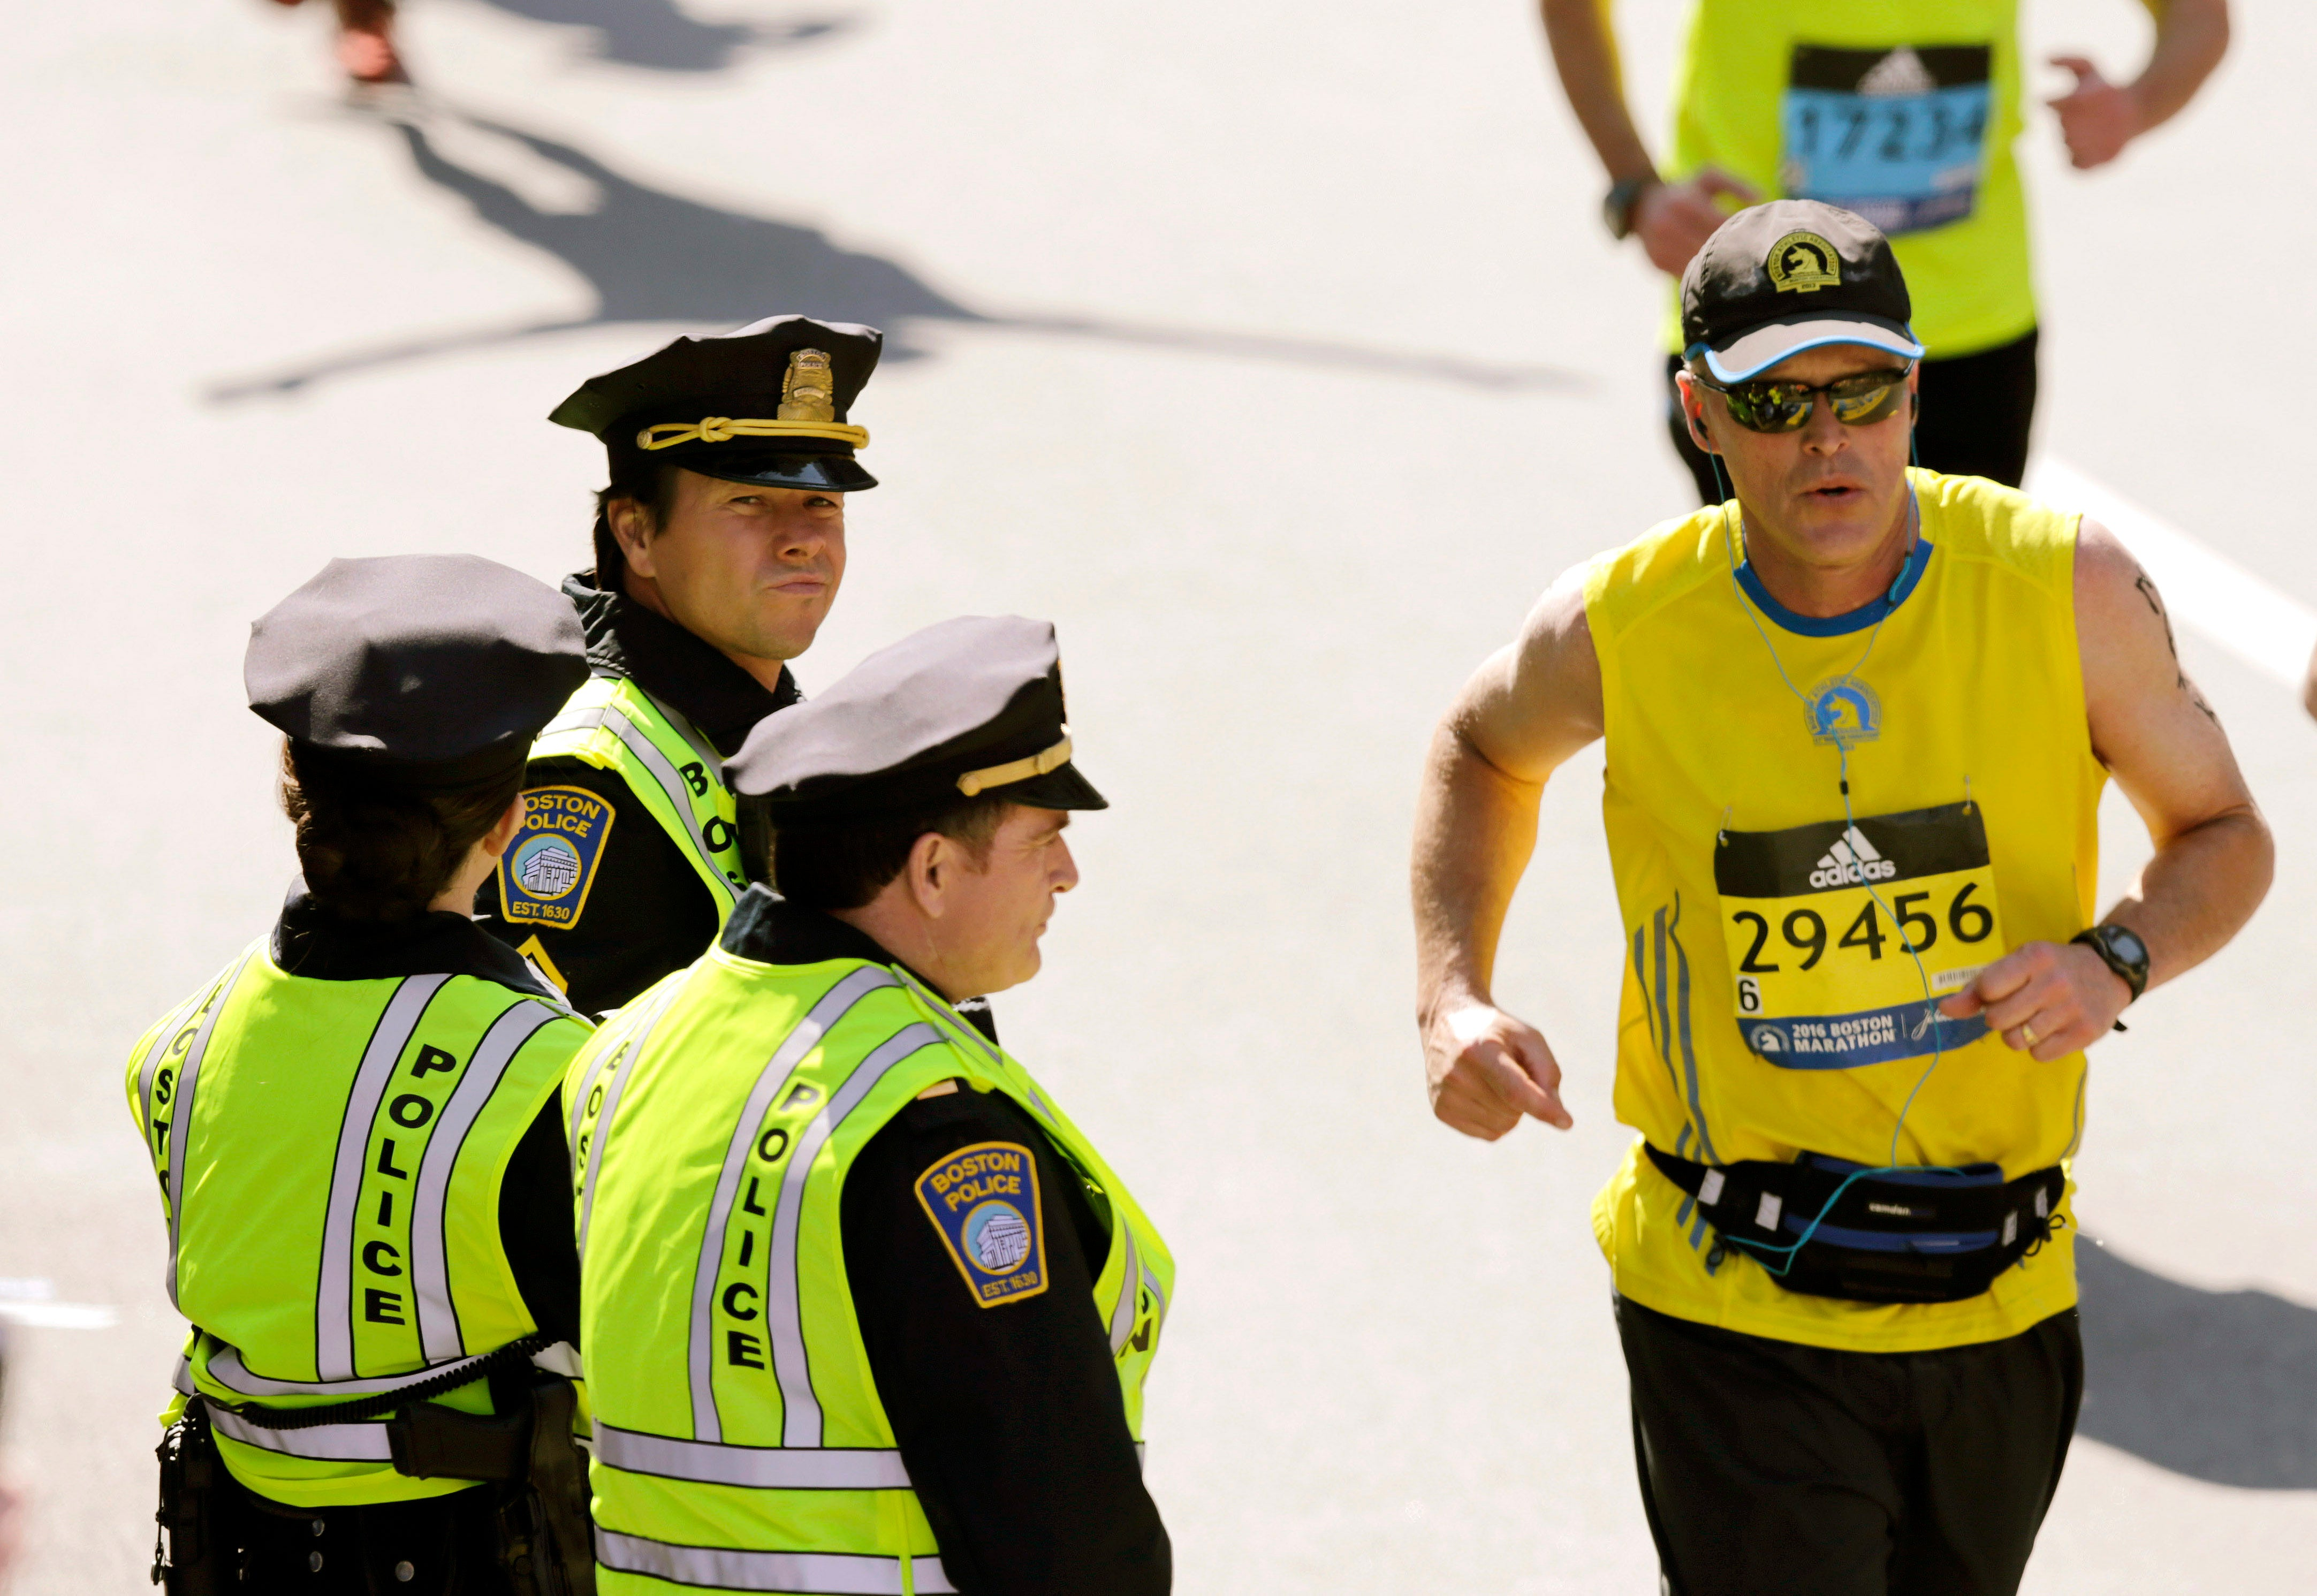 """Actor Mark Wahlberg, center left, dressed as a Boston Police officer, watches runners cross the finish line as he films a scene for his upcoming """"Patriot's Day"""" movie at the 120th Boston Marathon on Monday, April 18, 2016, in Boston. (AP Photo/Charles Krupa)"""